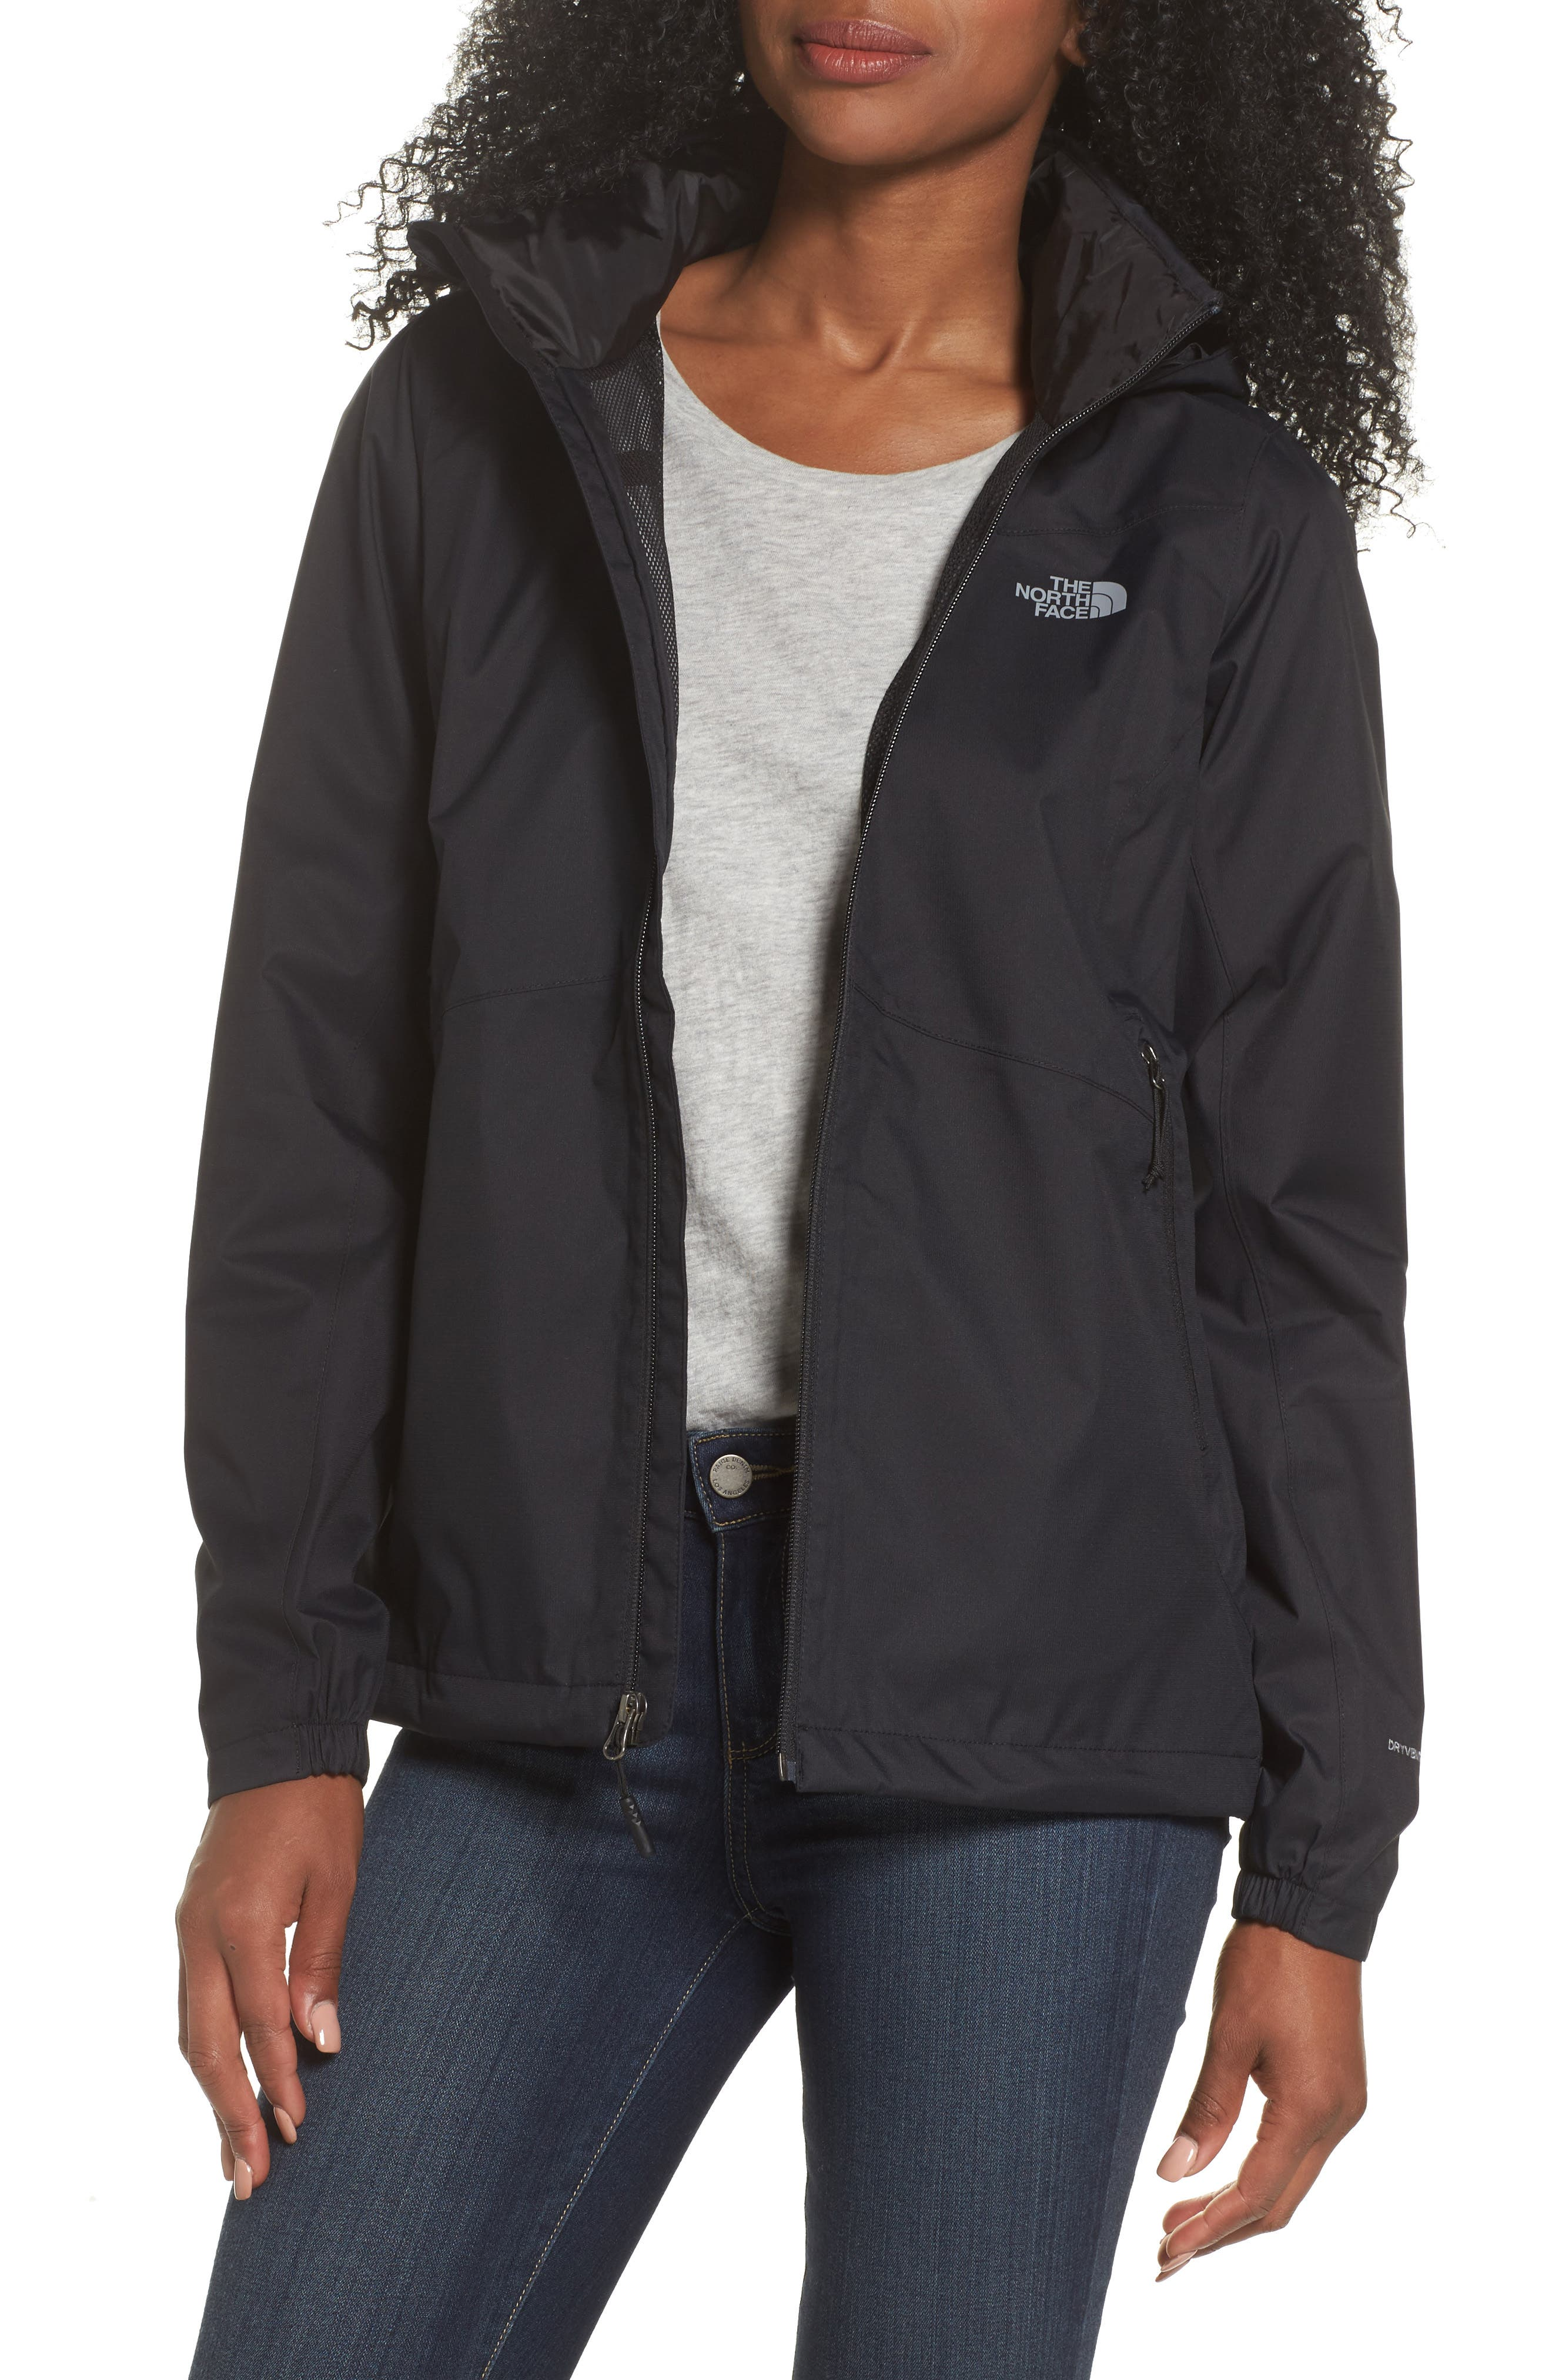 THE NORTH FACE, Resolve Plus Waterproof Jacket, Main thumbnail 1, color, TNF BLACK